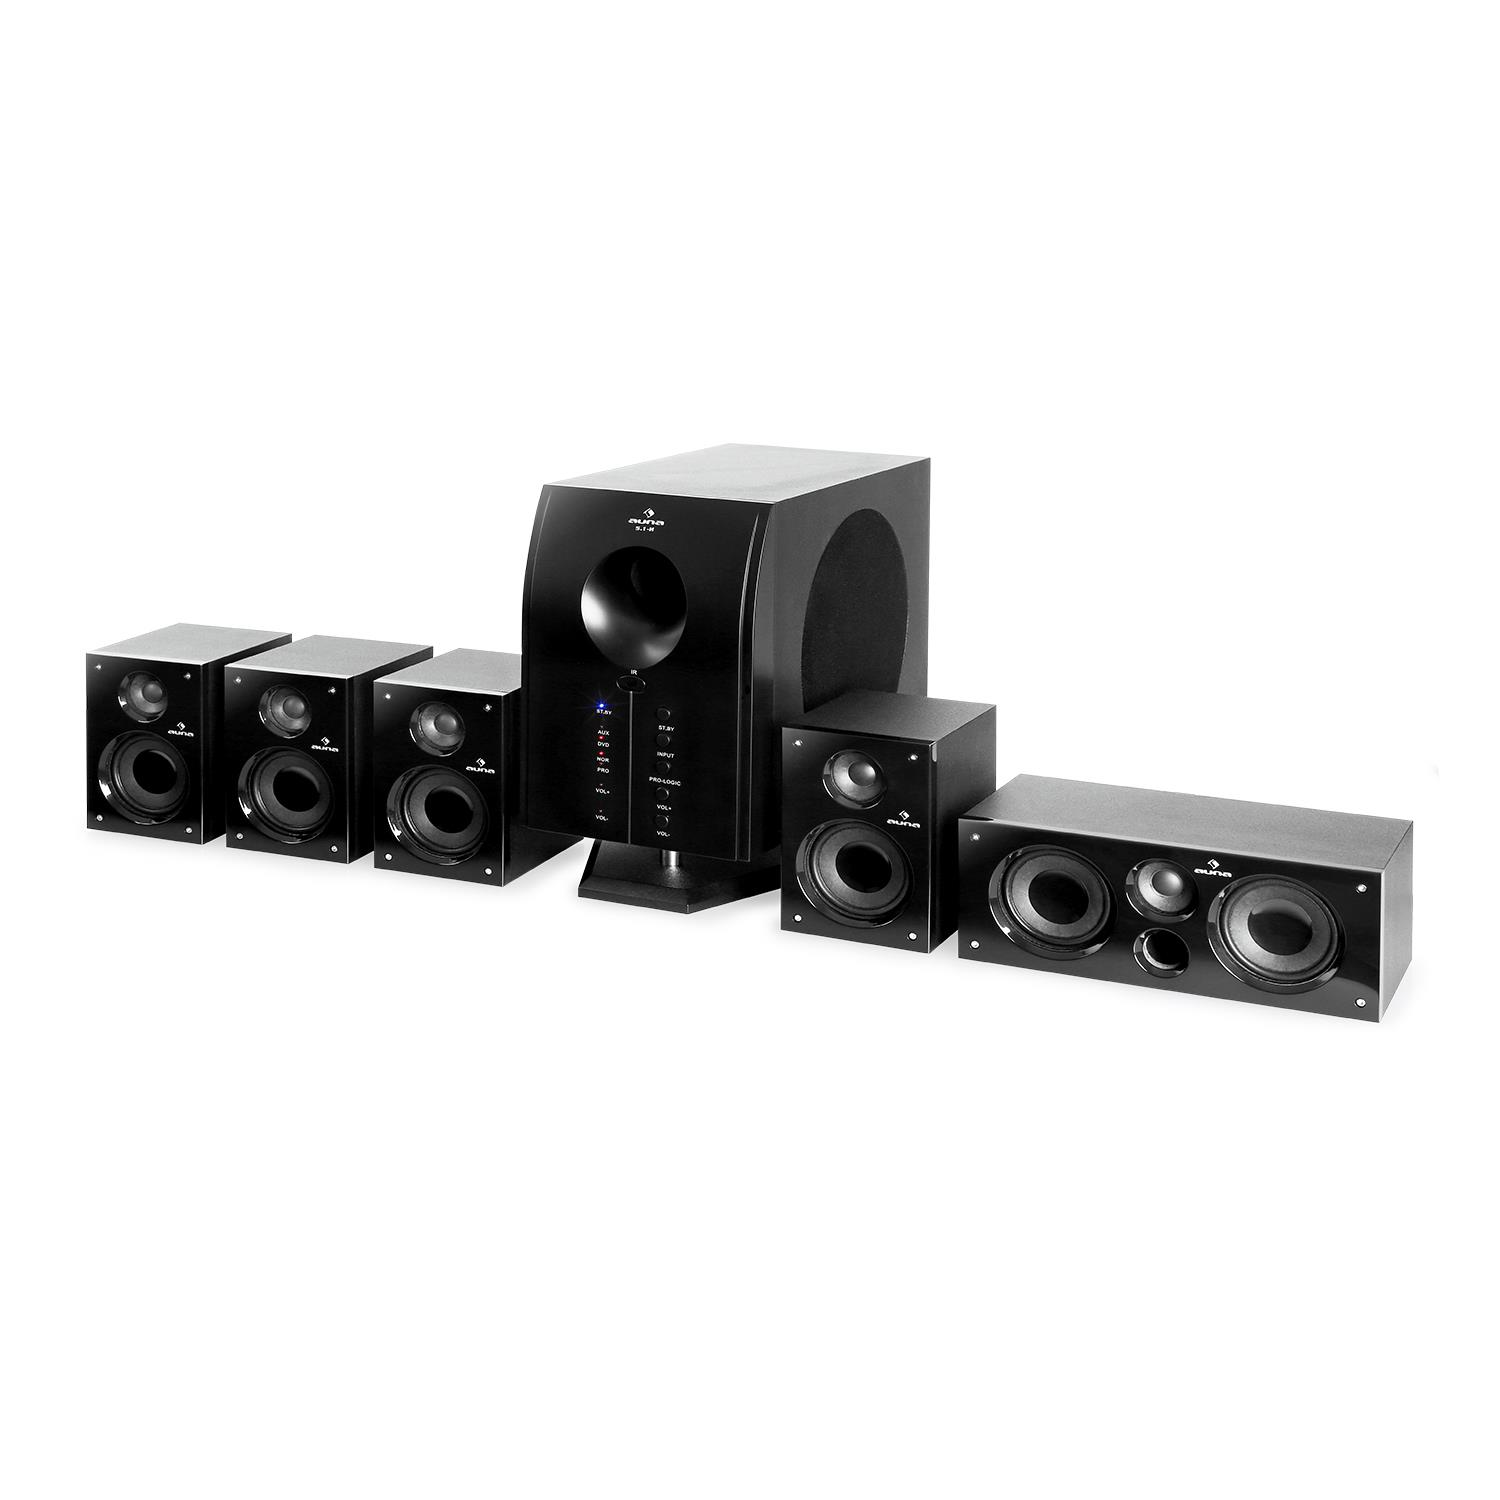 Auna-Areal-525-Bk-5-1-Surround-Sound-Active-Speaker-System-125-W-RMS thumbnail 9